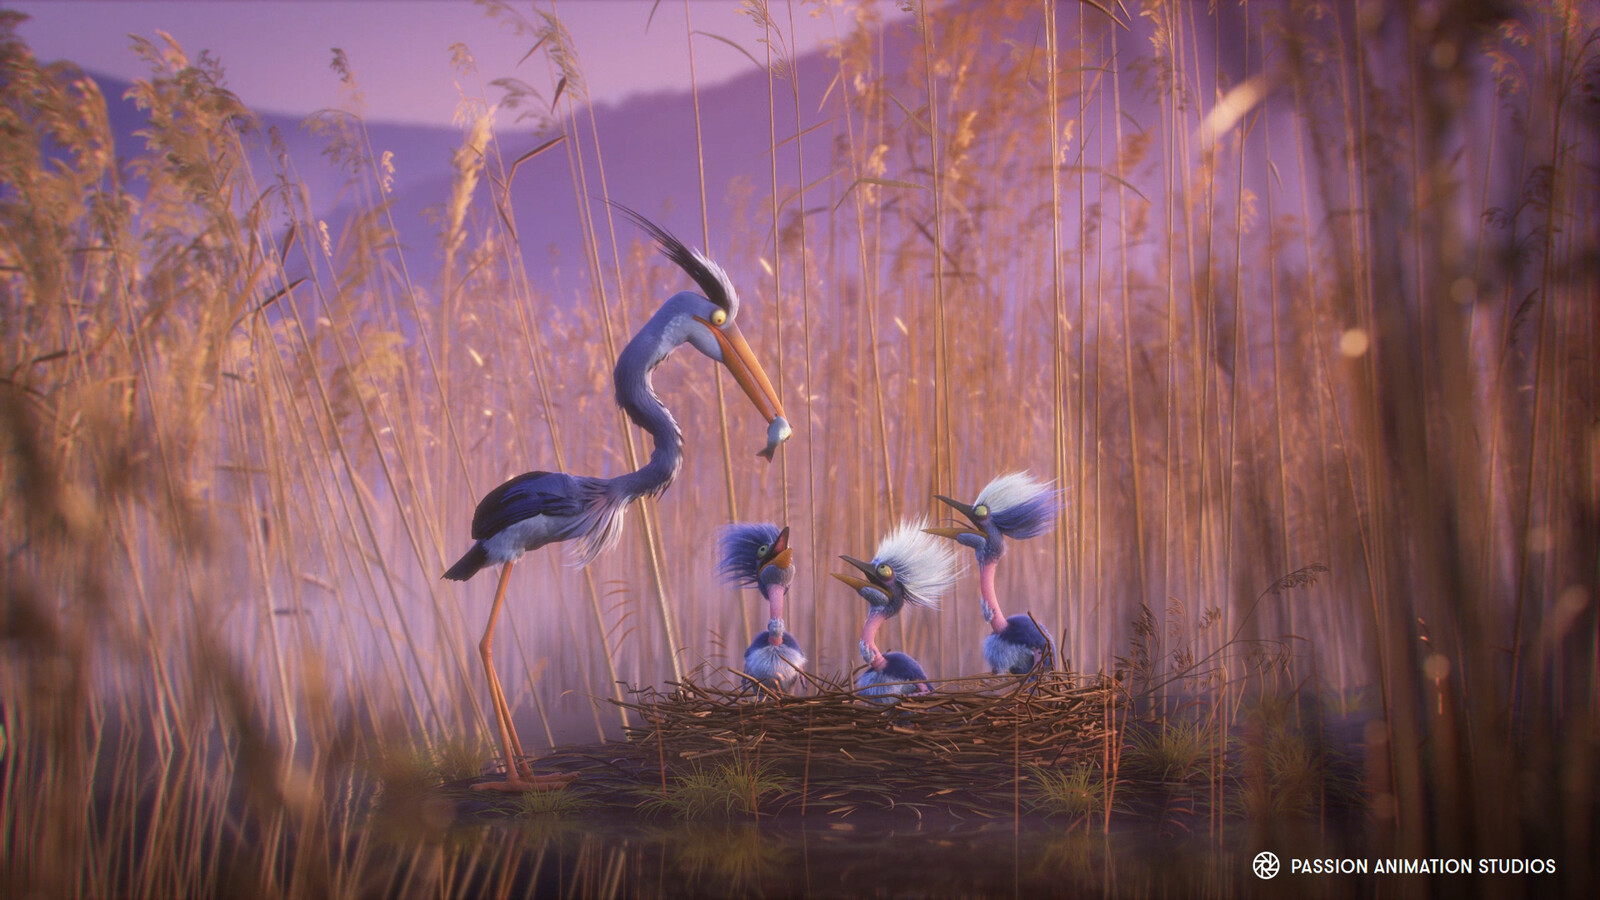 Nesting area, reeds and fish modeling